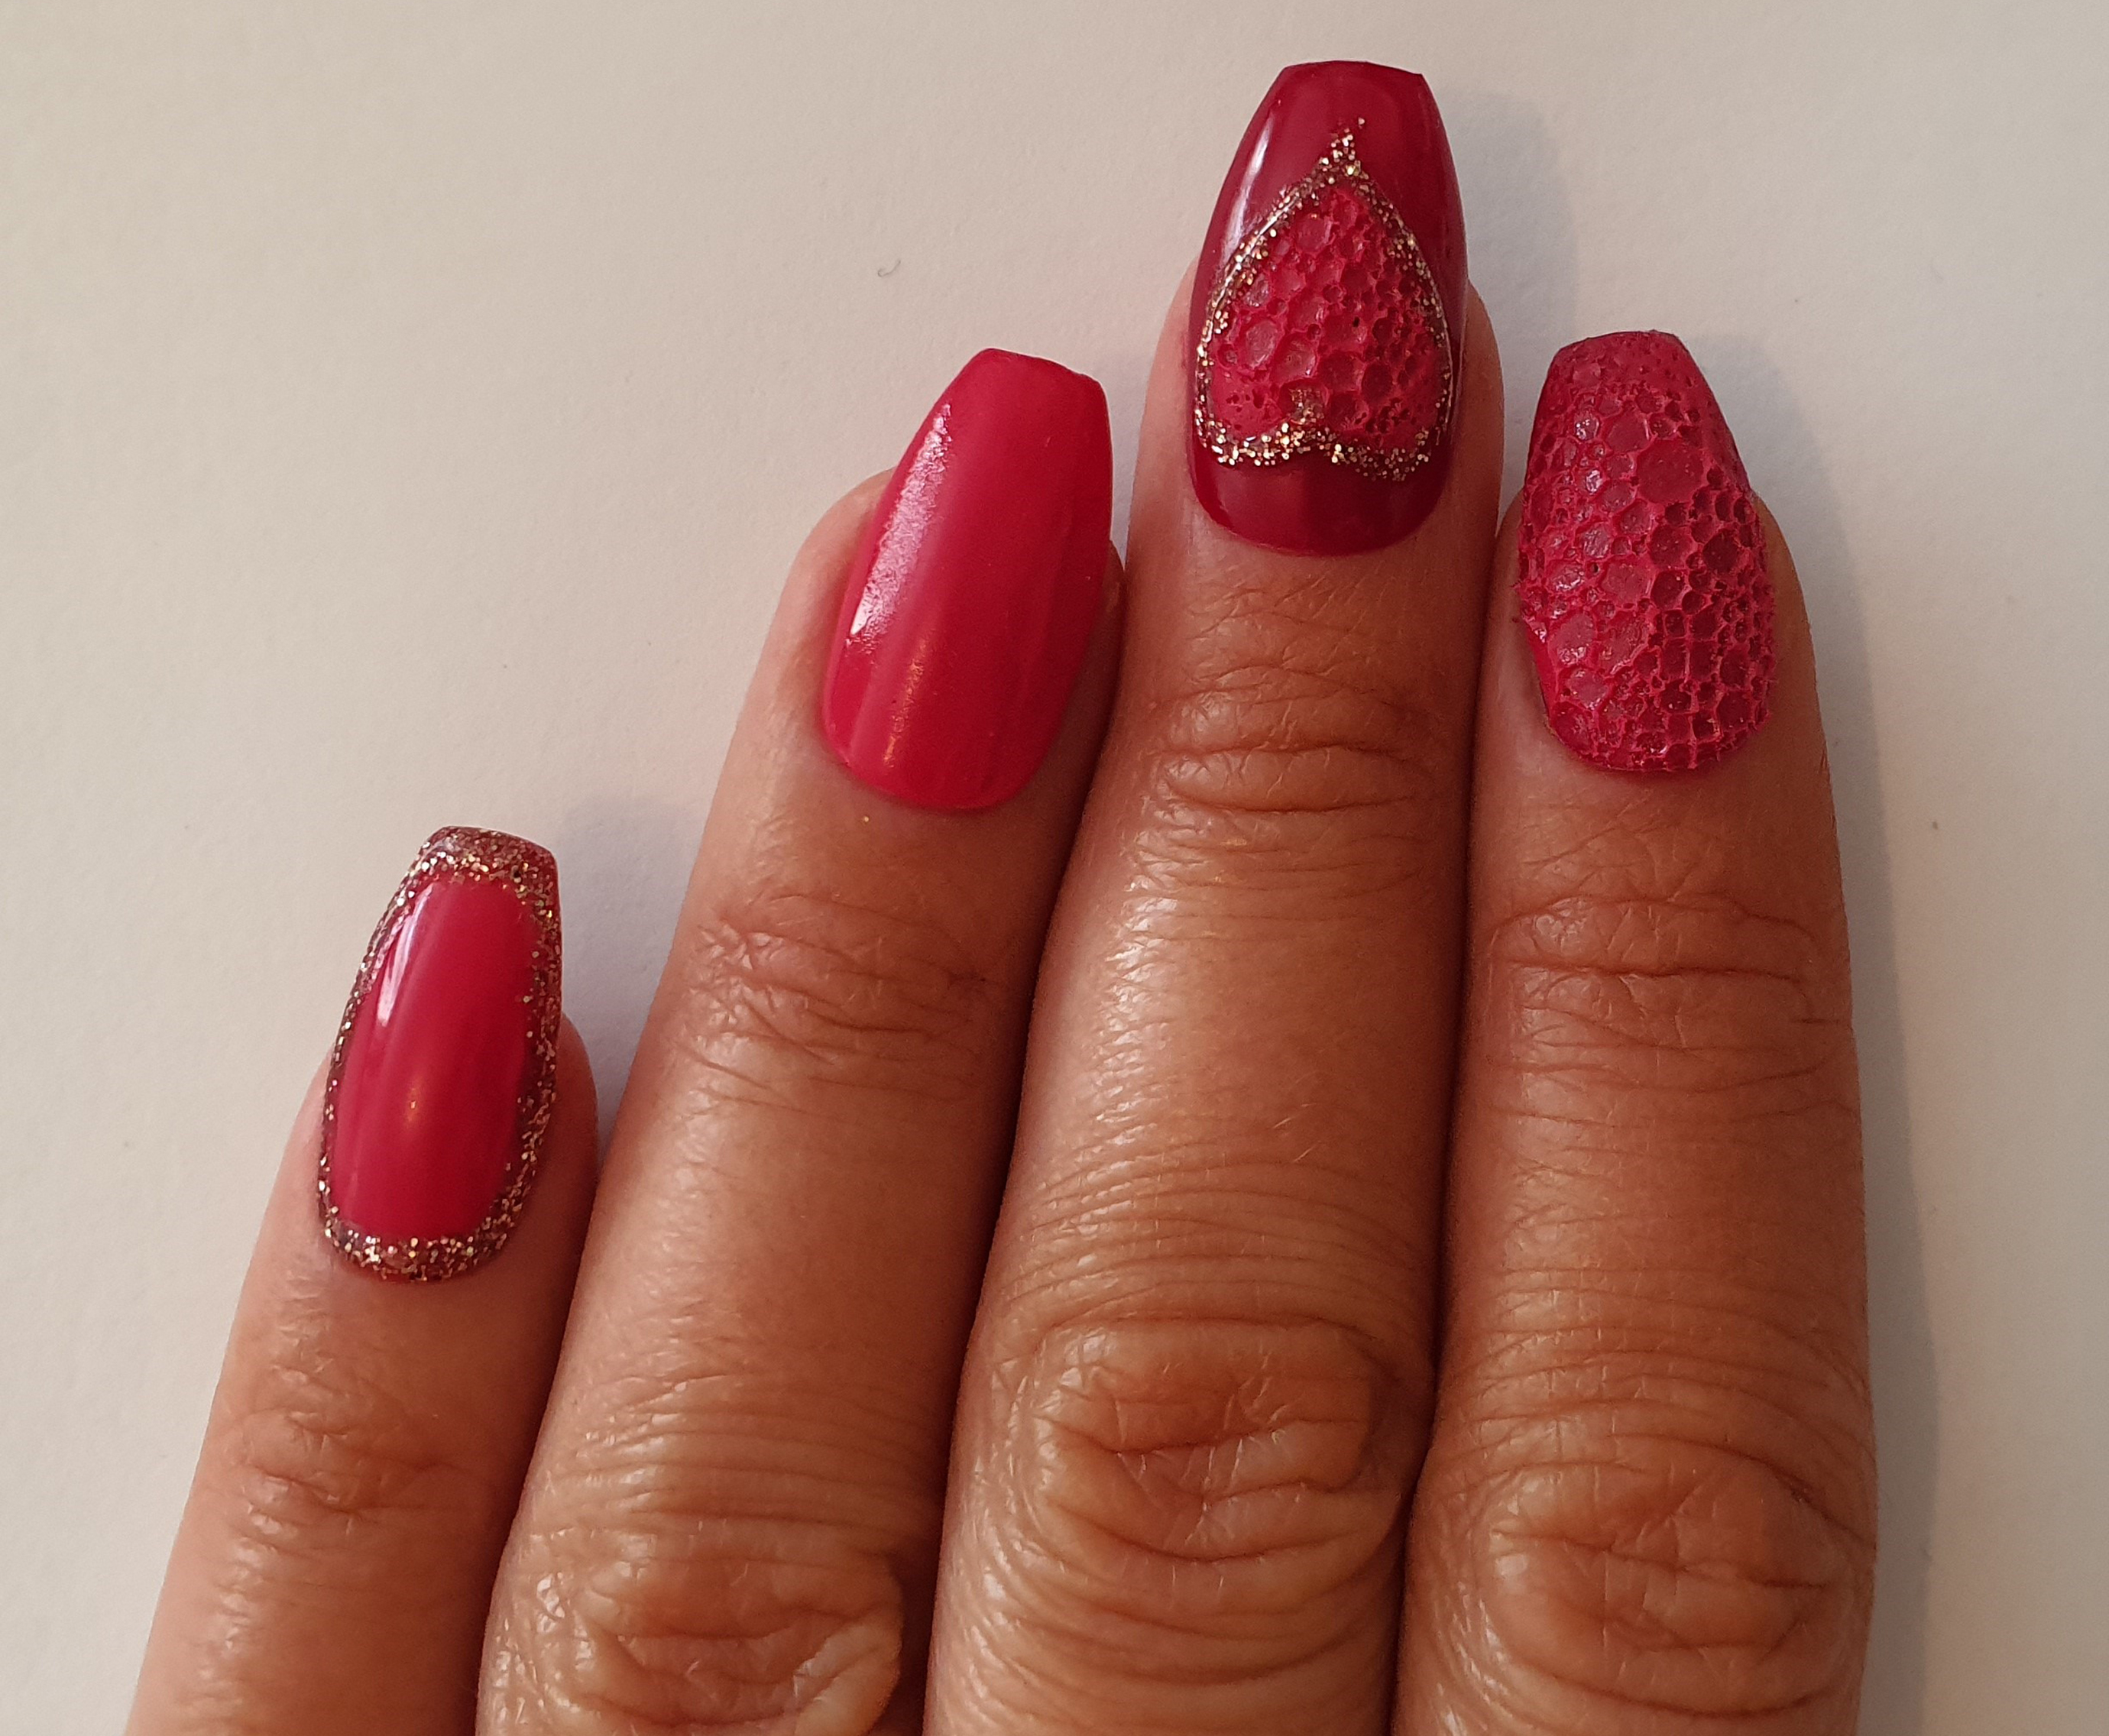 Feel the love with Salon System Nail expert Karen Louise's Valentine's-inspired nail art design